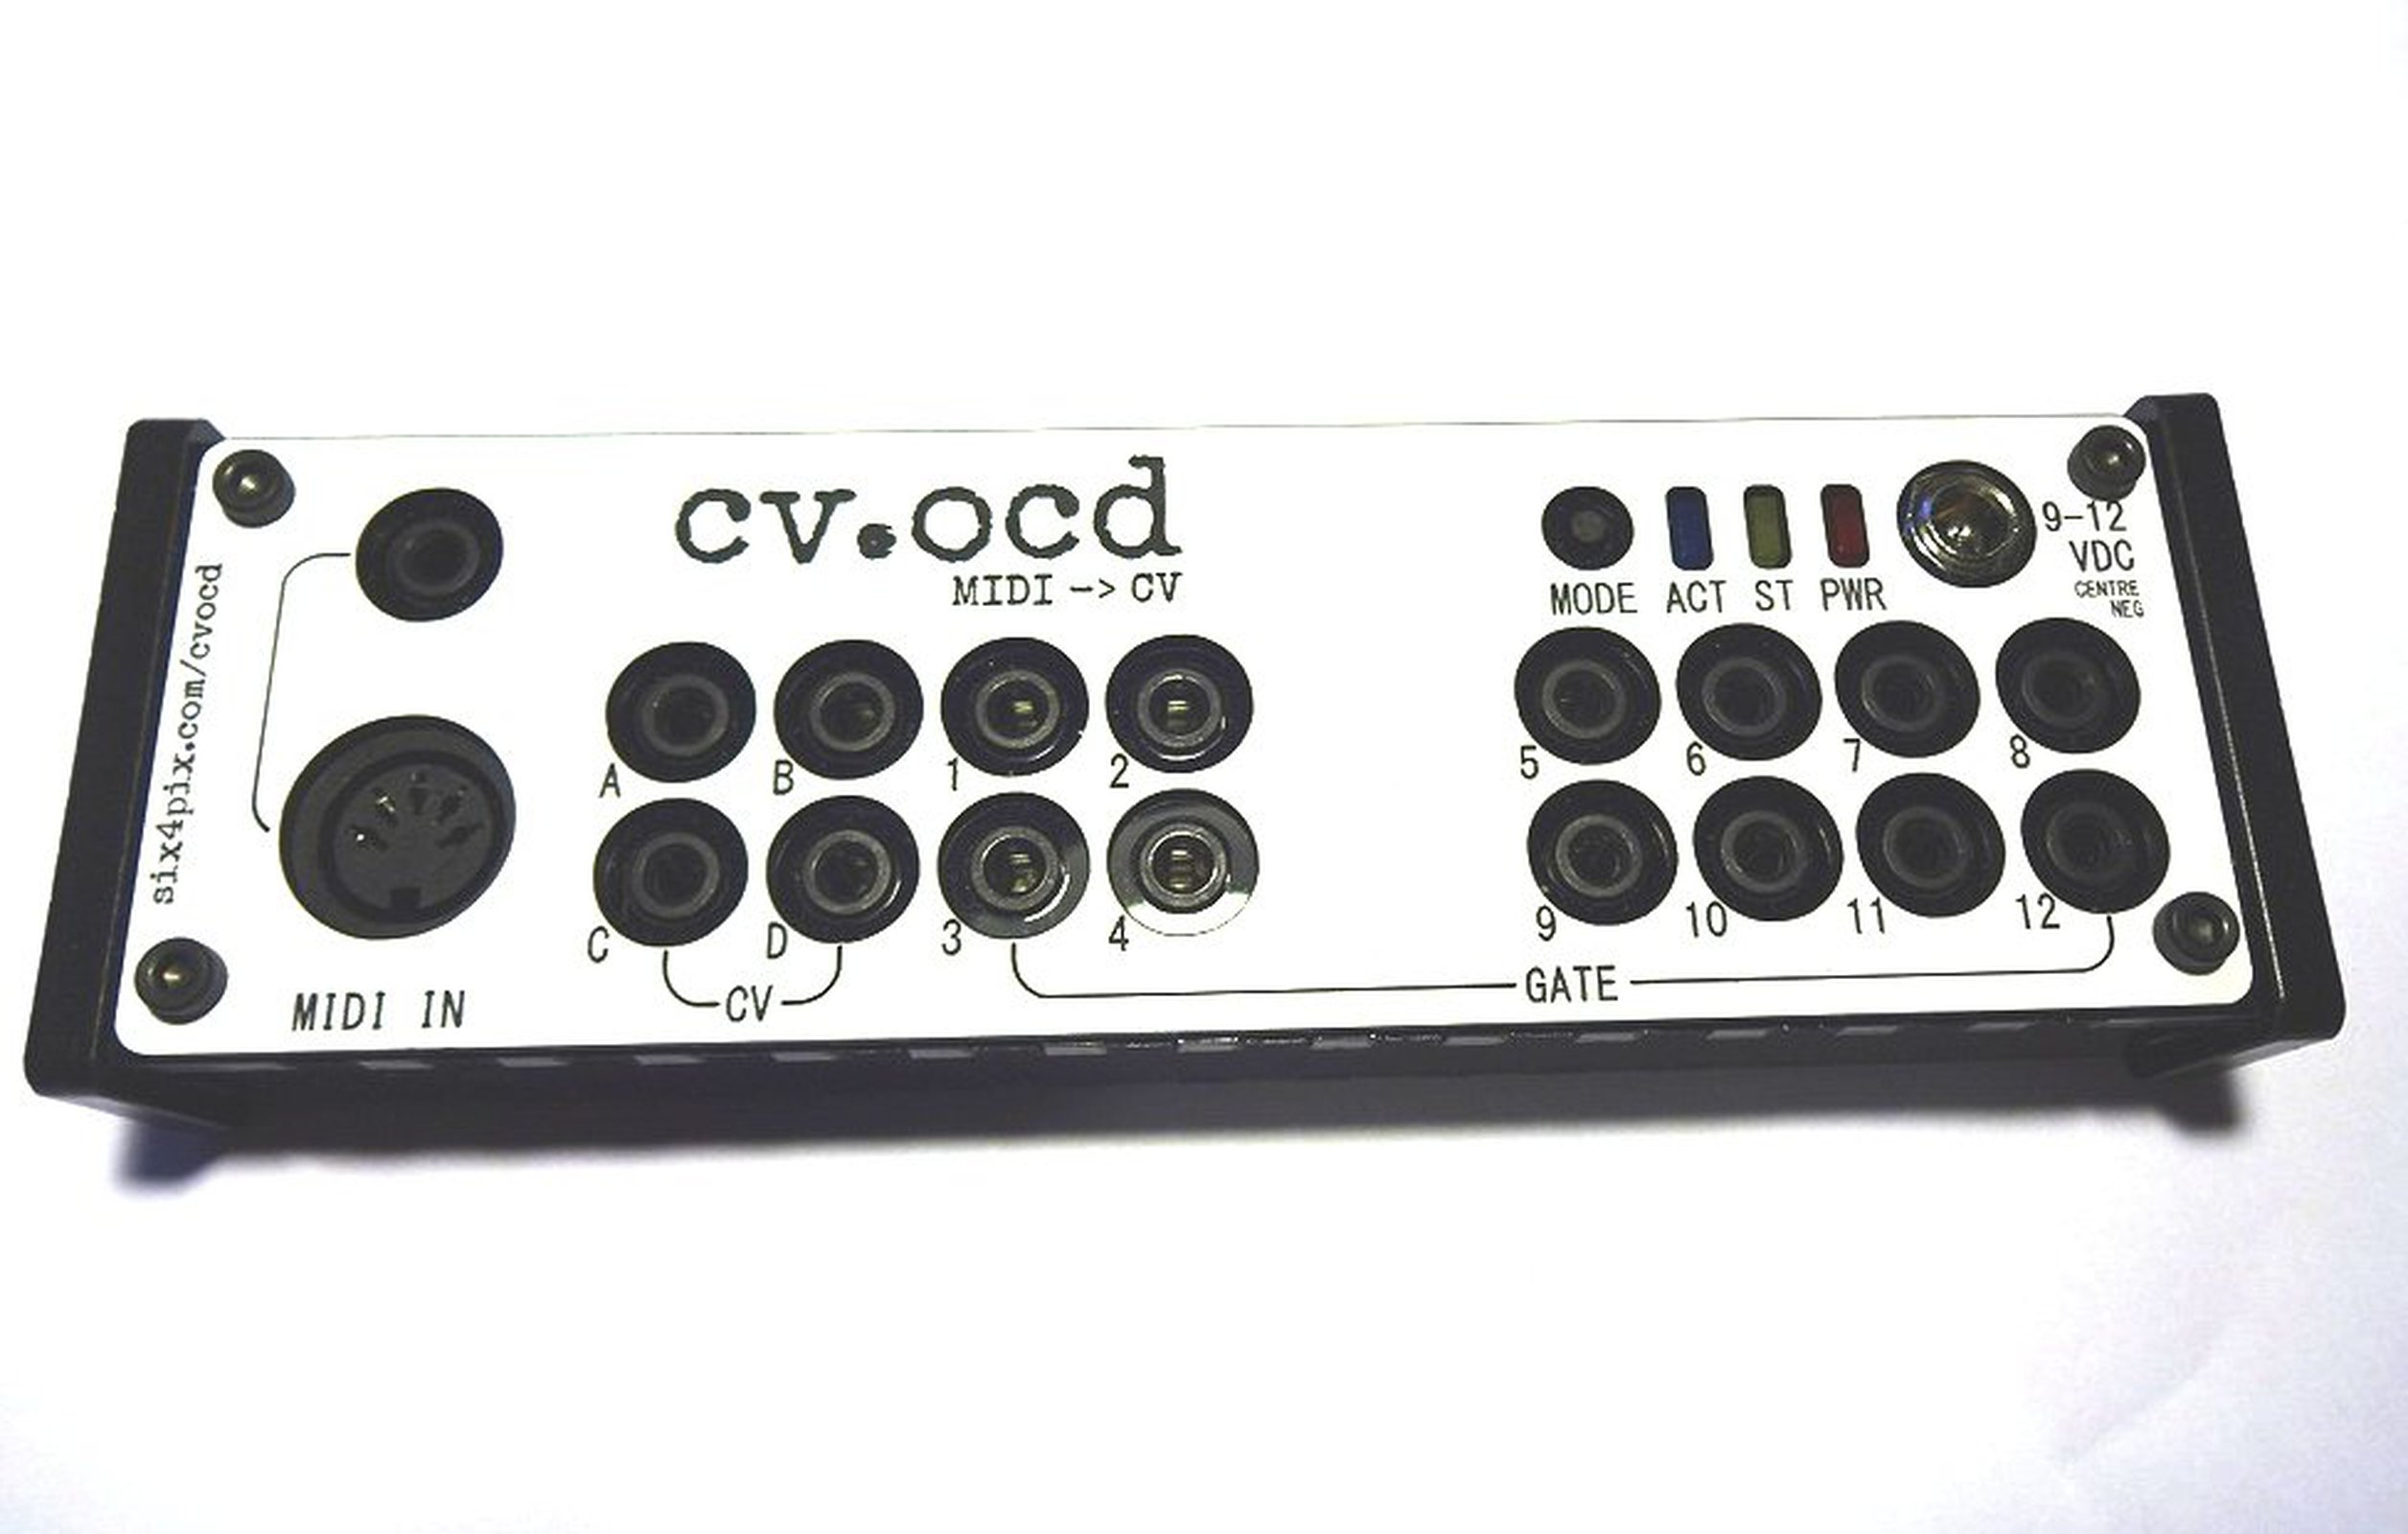 CV OCD A Super Flexible MIDI To CV Box From Sixty Four On